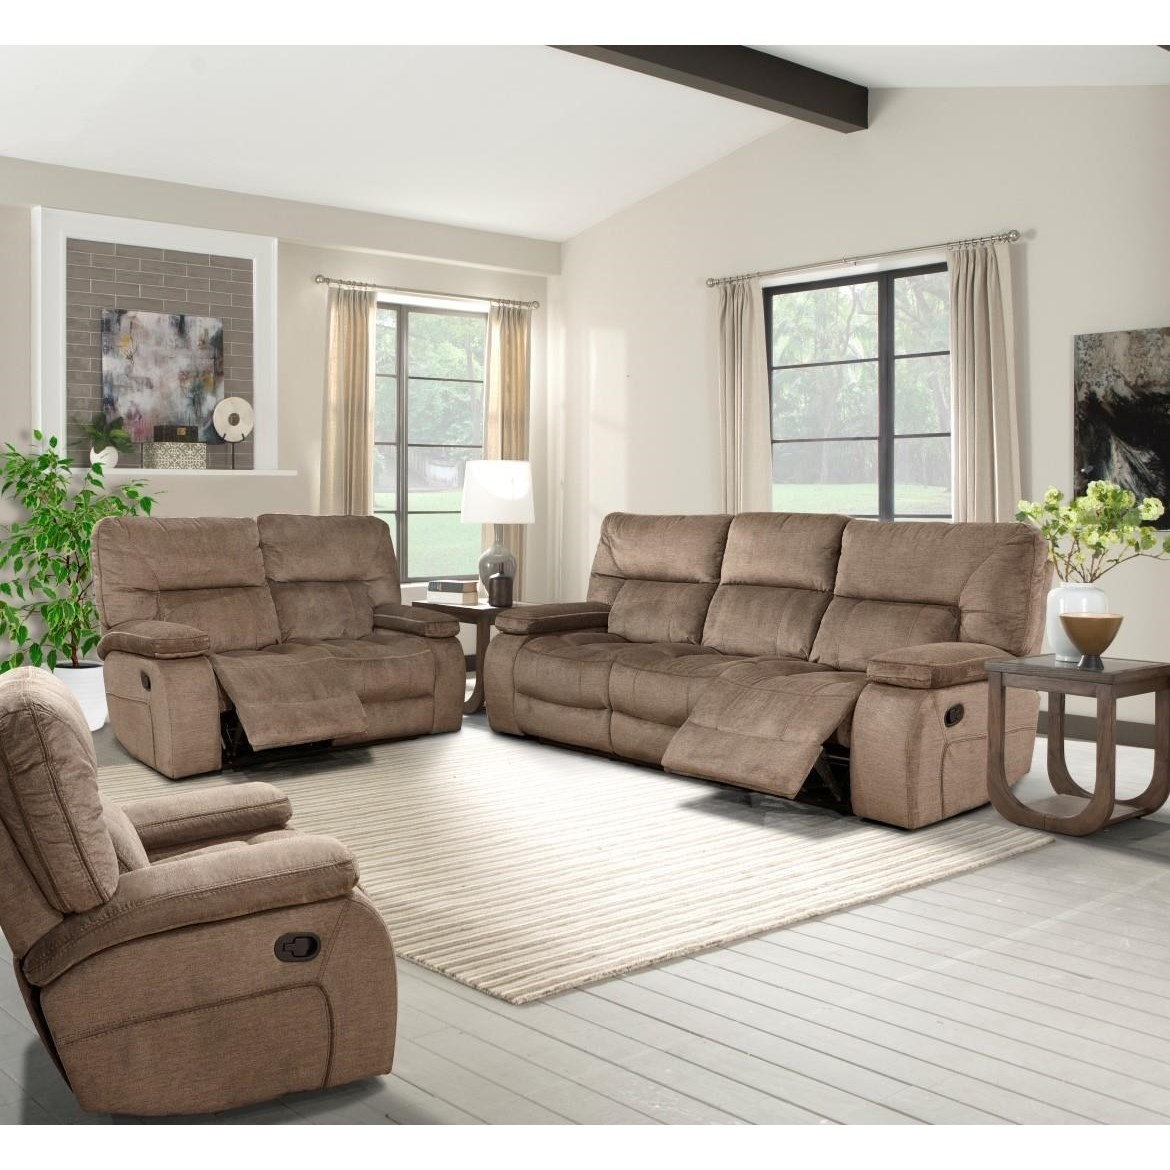 Chapman Reclining Living Room Group by Parker Living at Zak's Warehouse Clearance Center